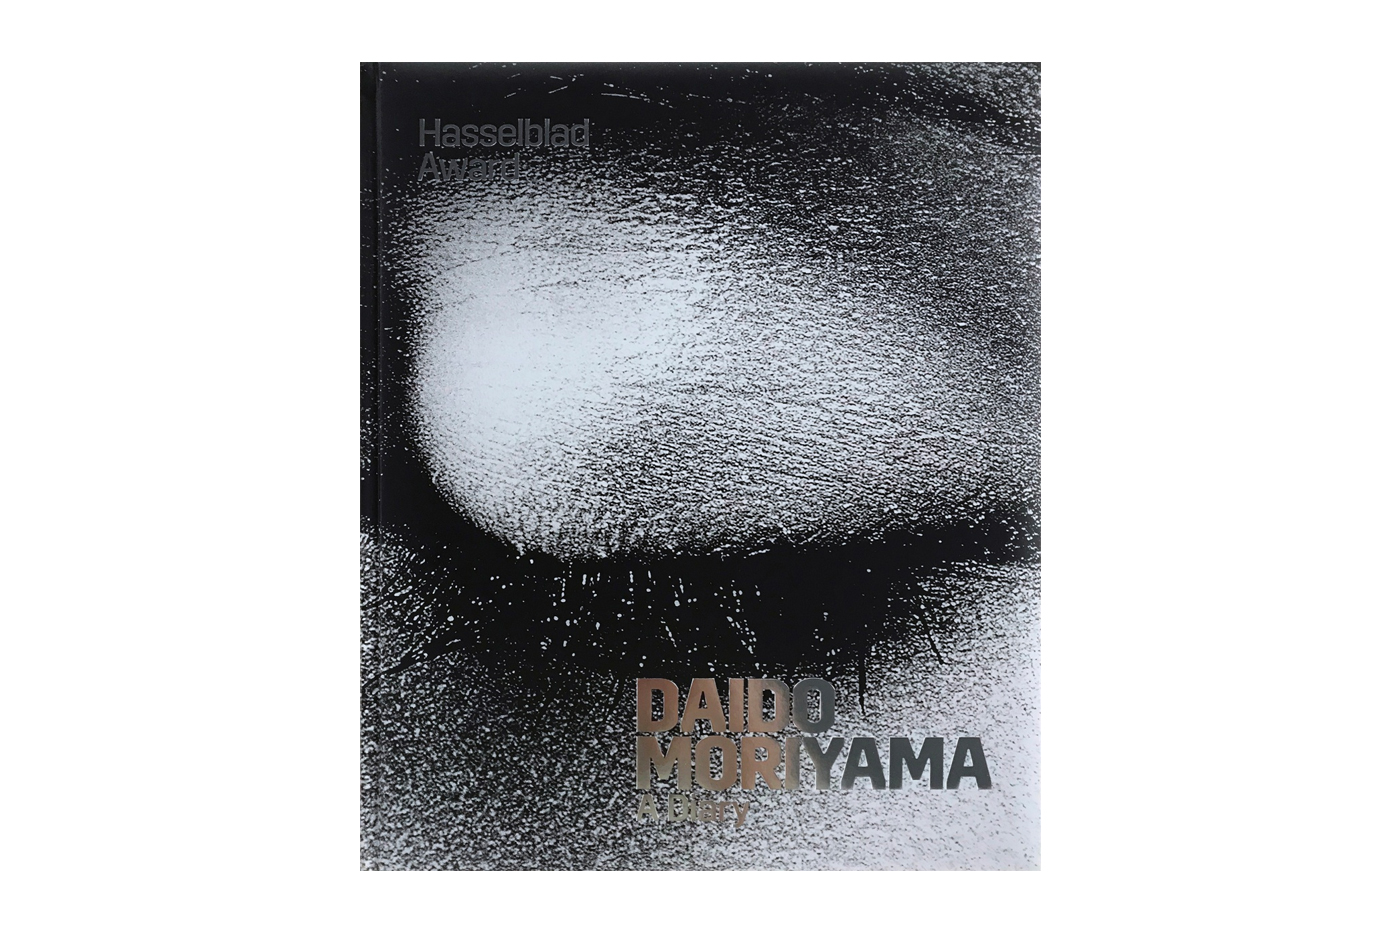 Daido Moriyama Photobook A Diary 250 page two hundred and fifty pages documentation photography style black and white monochromatic Hasselblad Award 2019 Koenig Books